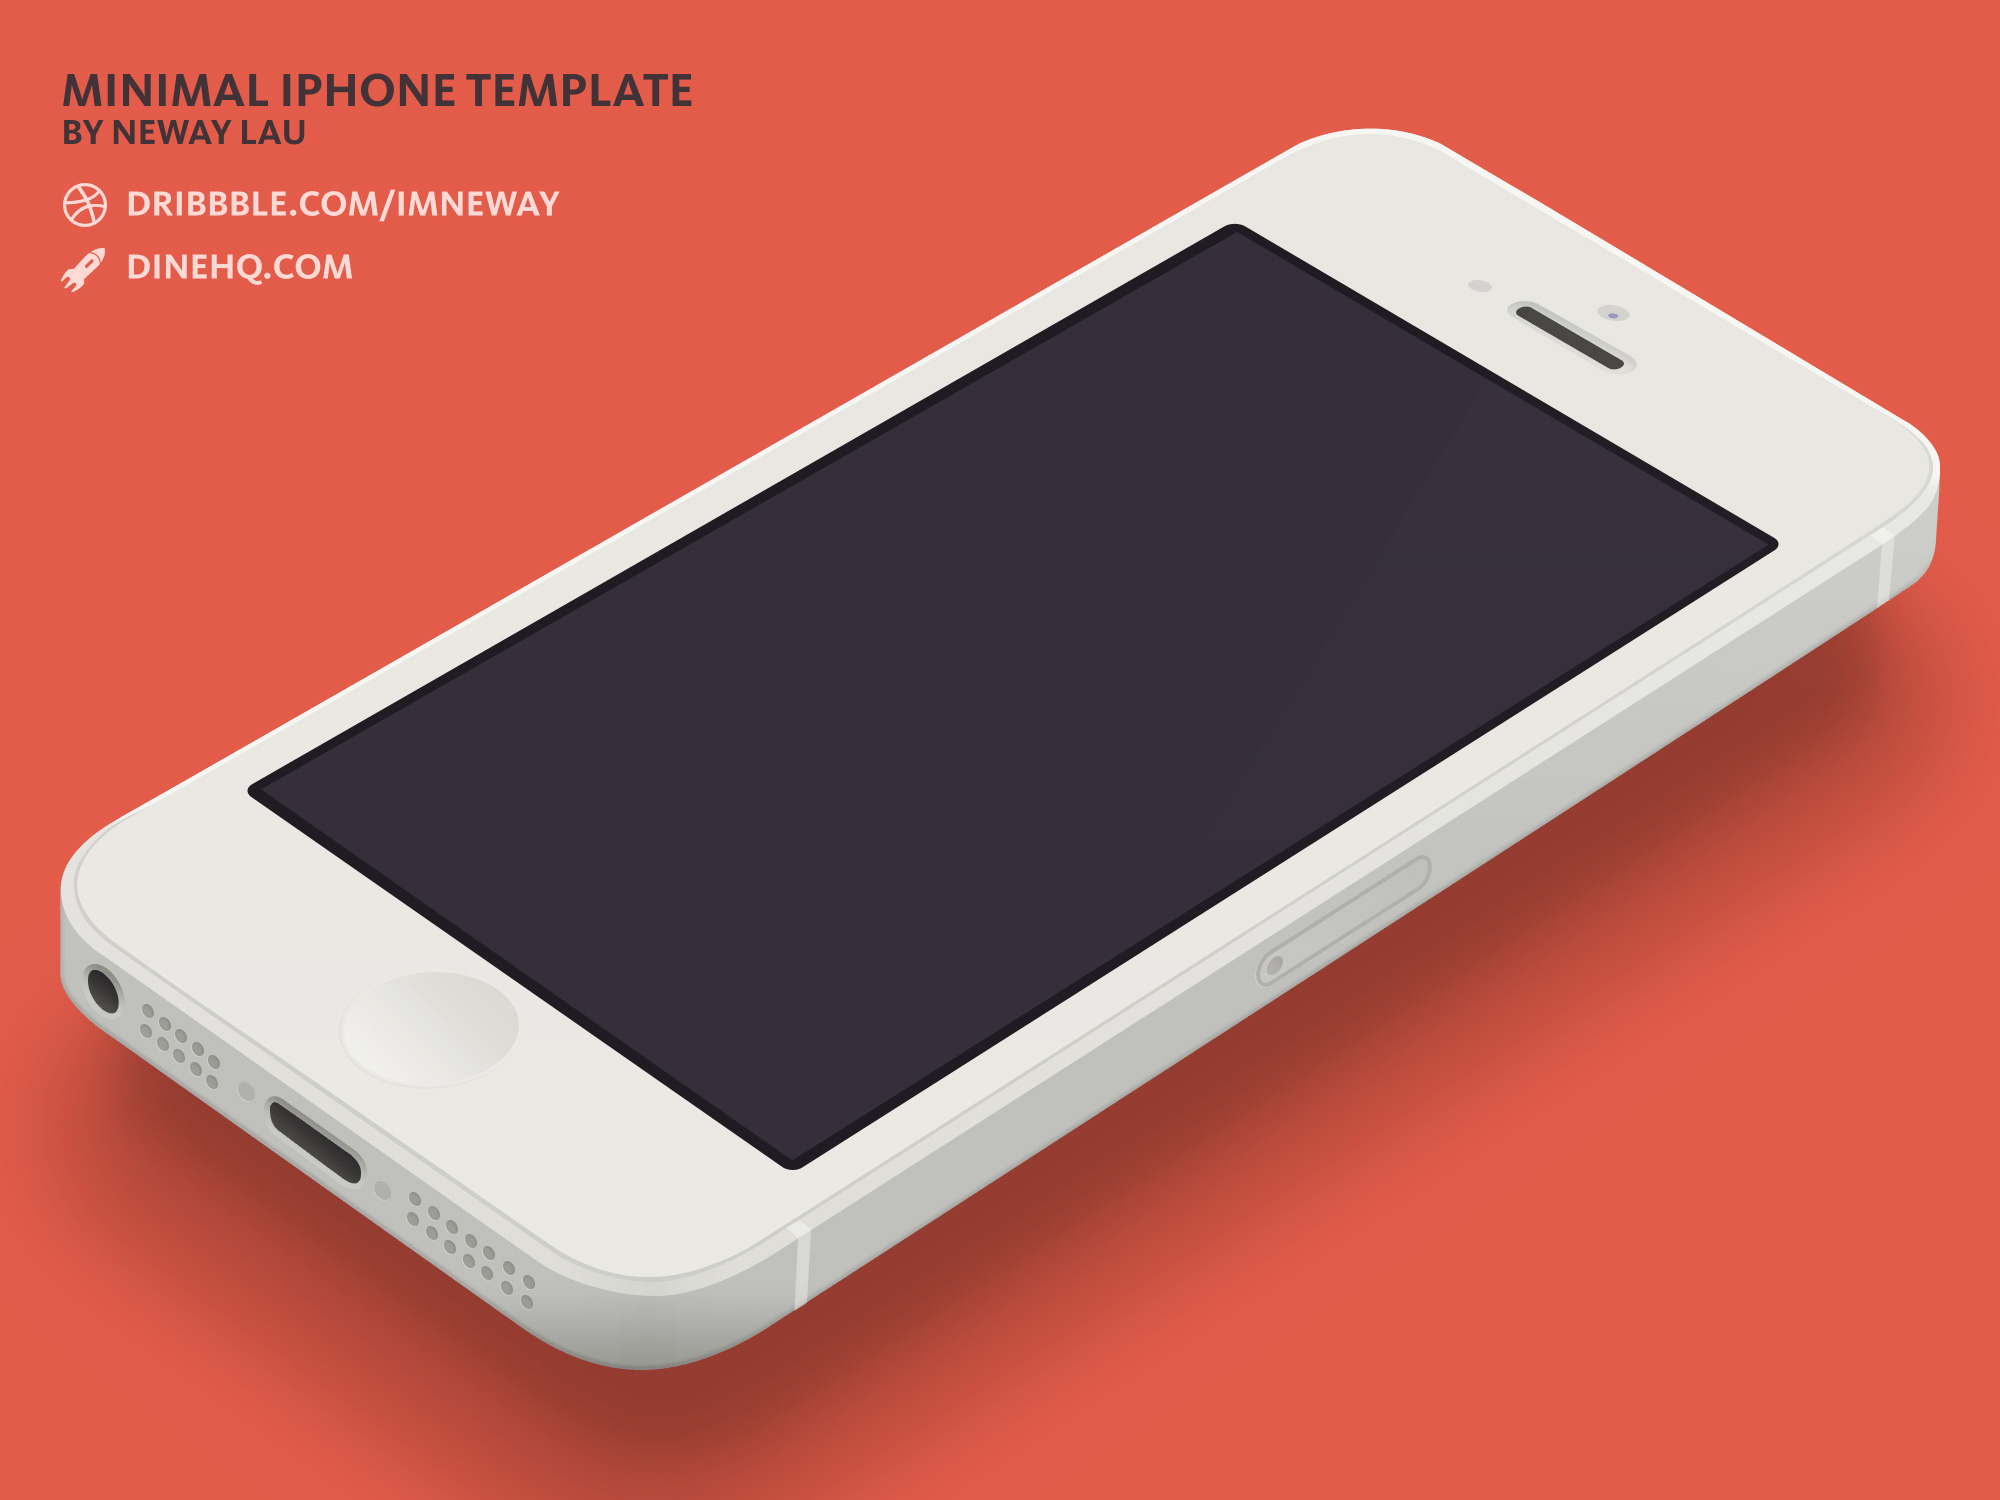 Free iPhone 5 Template PSD